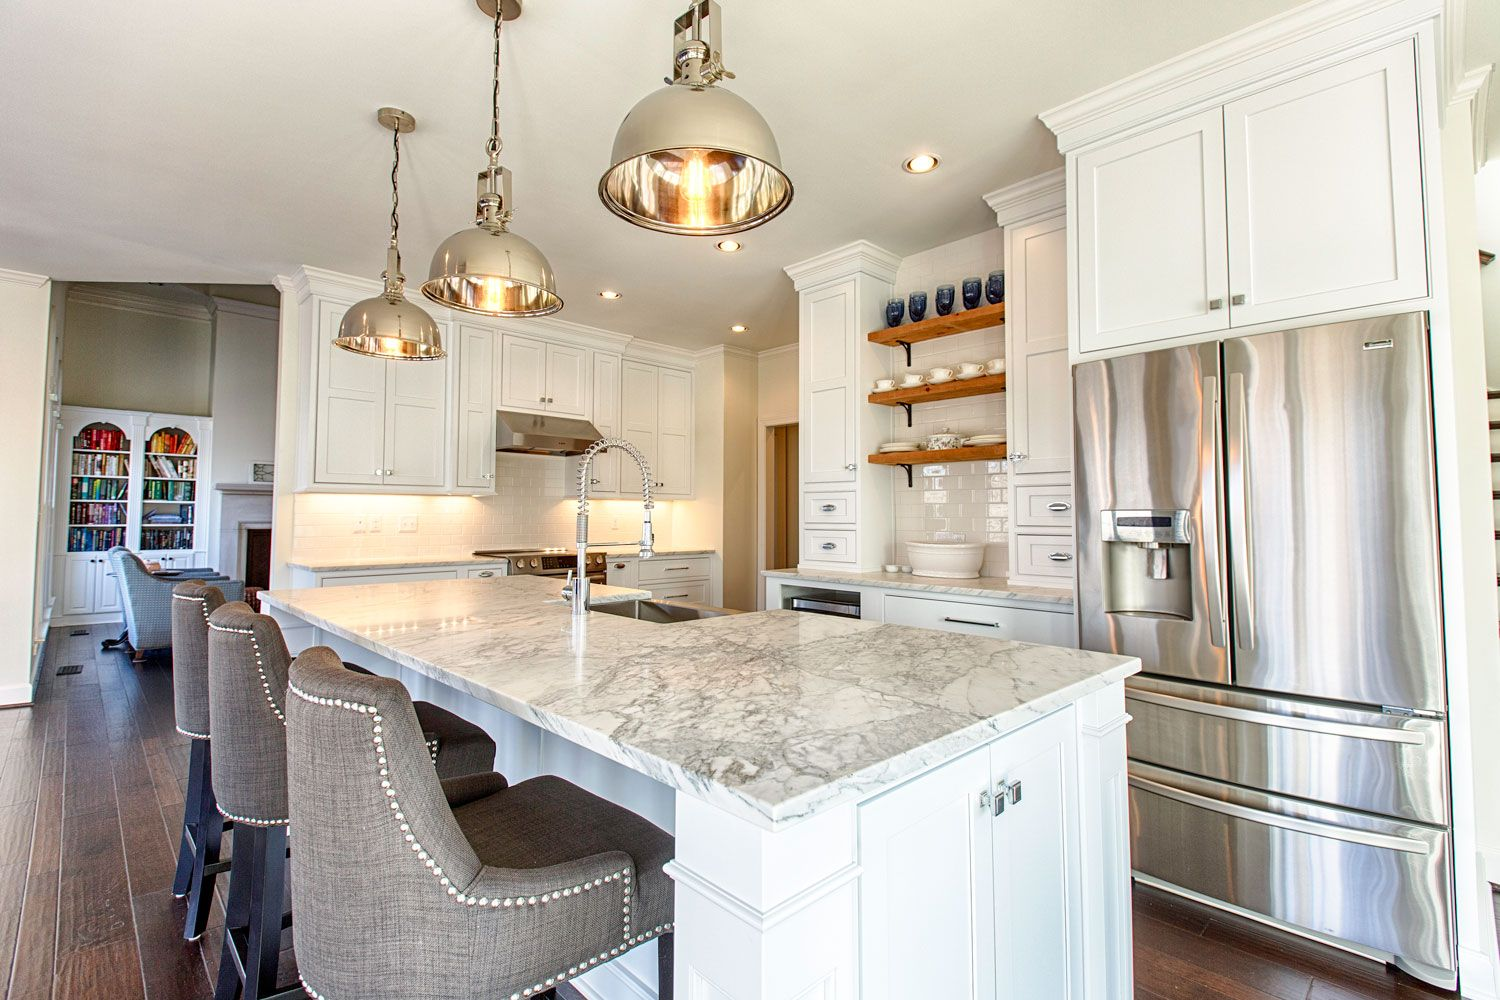 Professional Advice On Choosing Kitchen Countertop Materials | Open ...